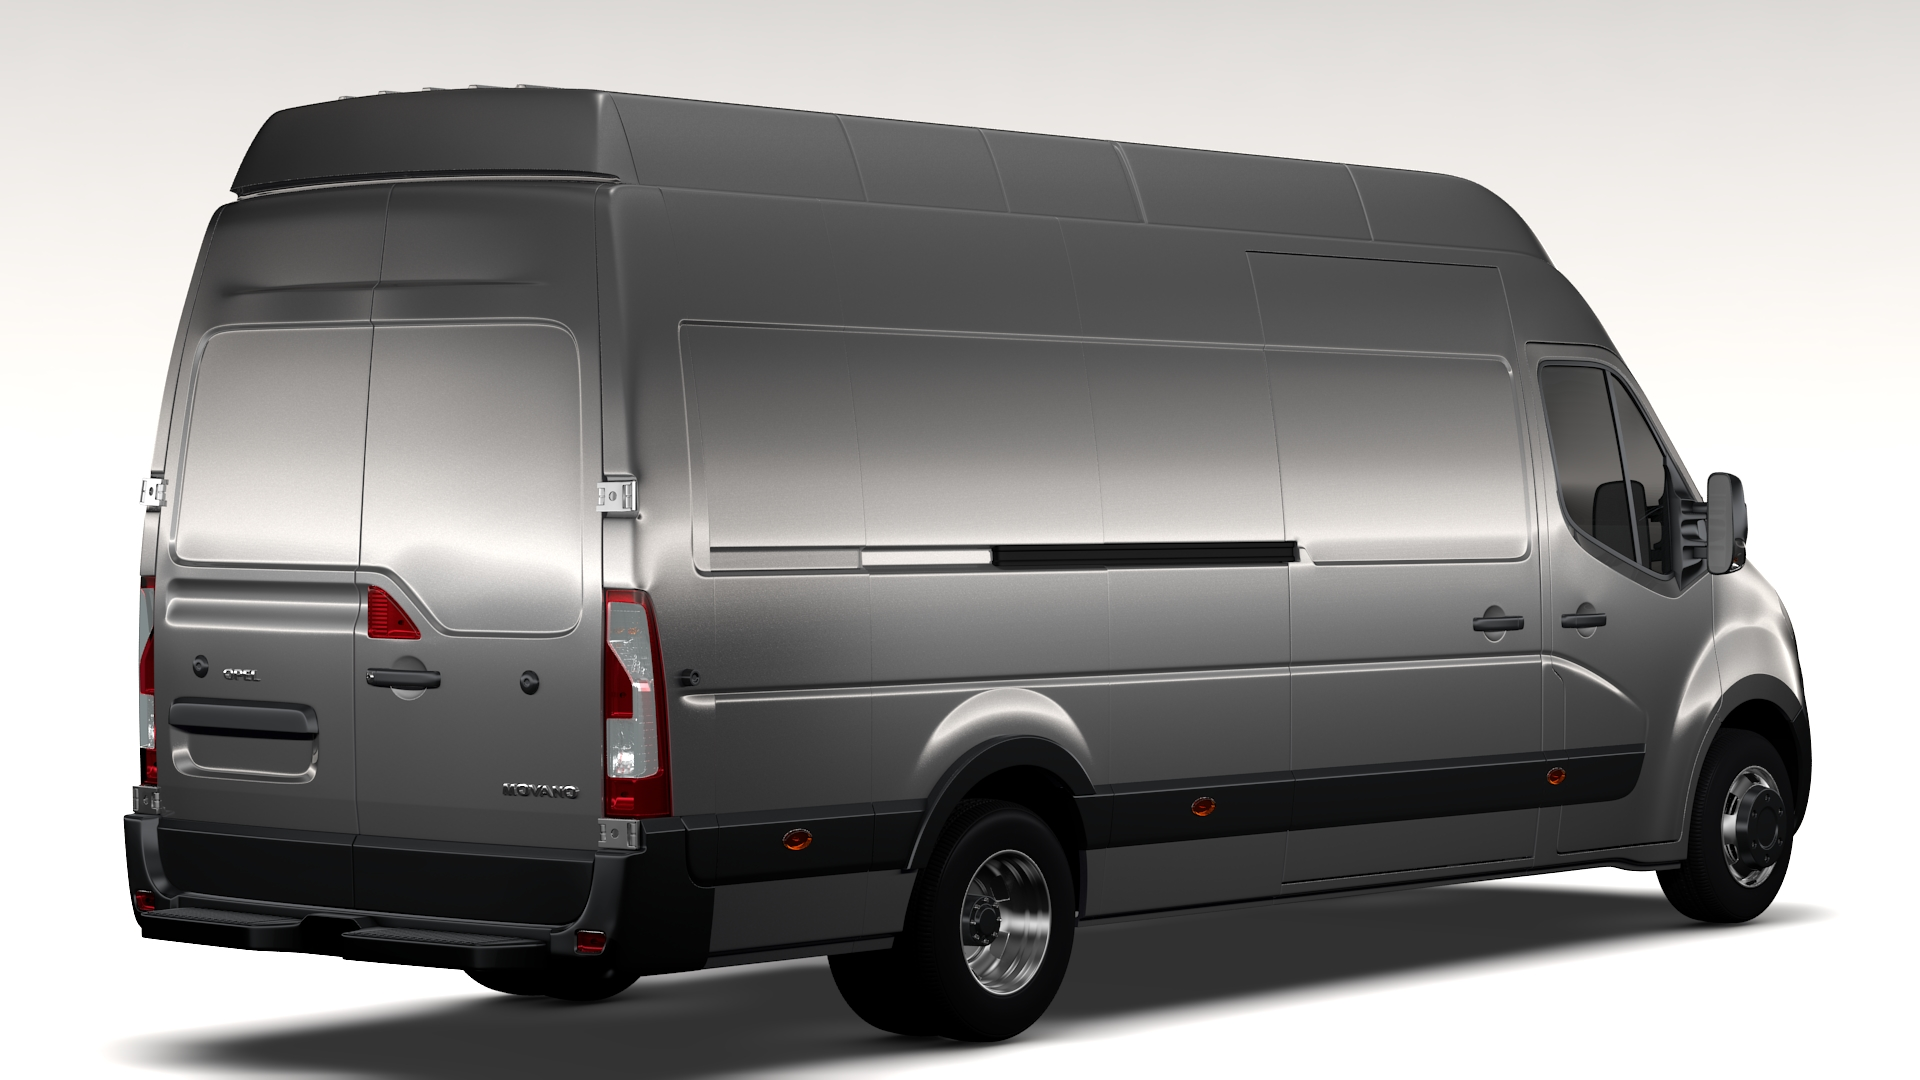 opel movano l4h3 van 2016 3d model buy opel movano l4h3 van 2016 3d model flatpyramid. Black Bedroom Furniture Sets. Home Design Ideas